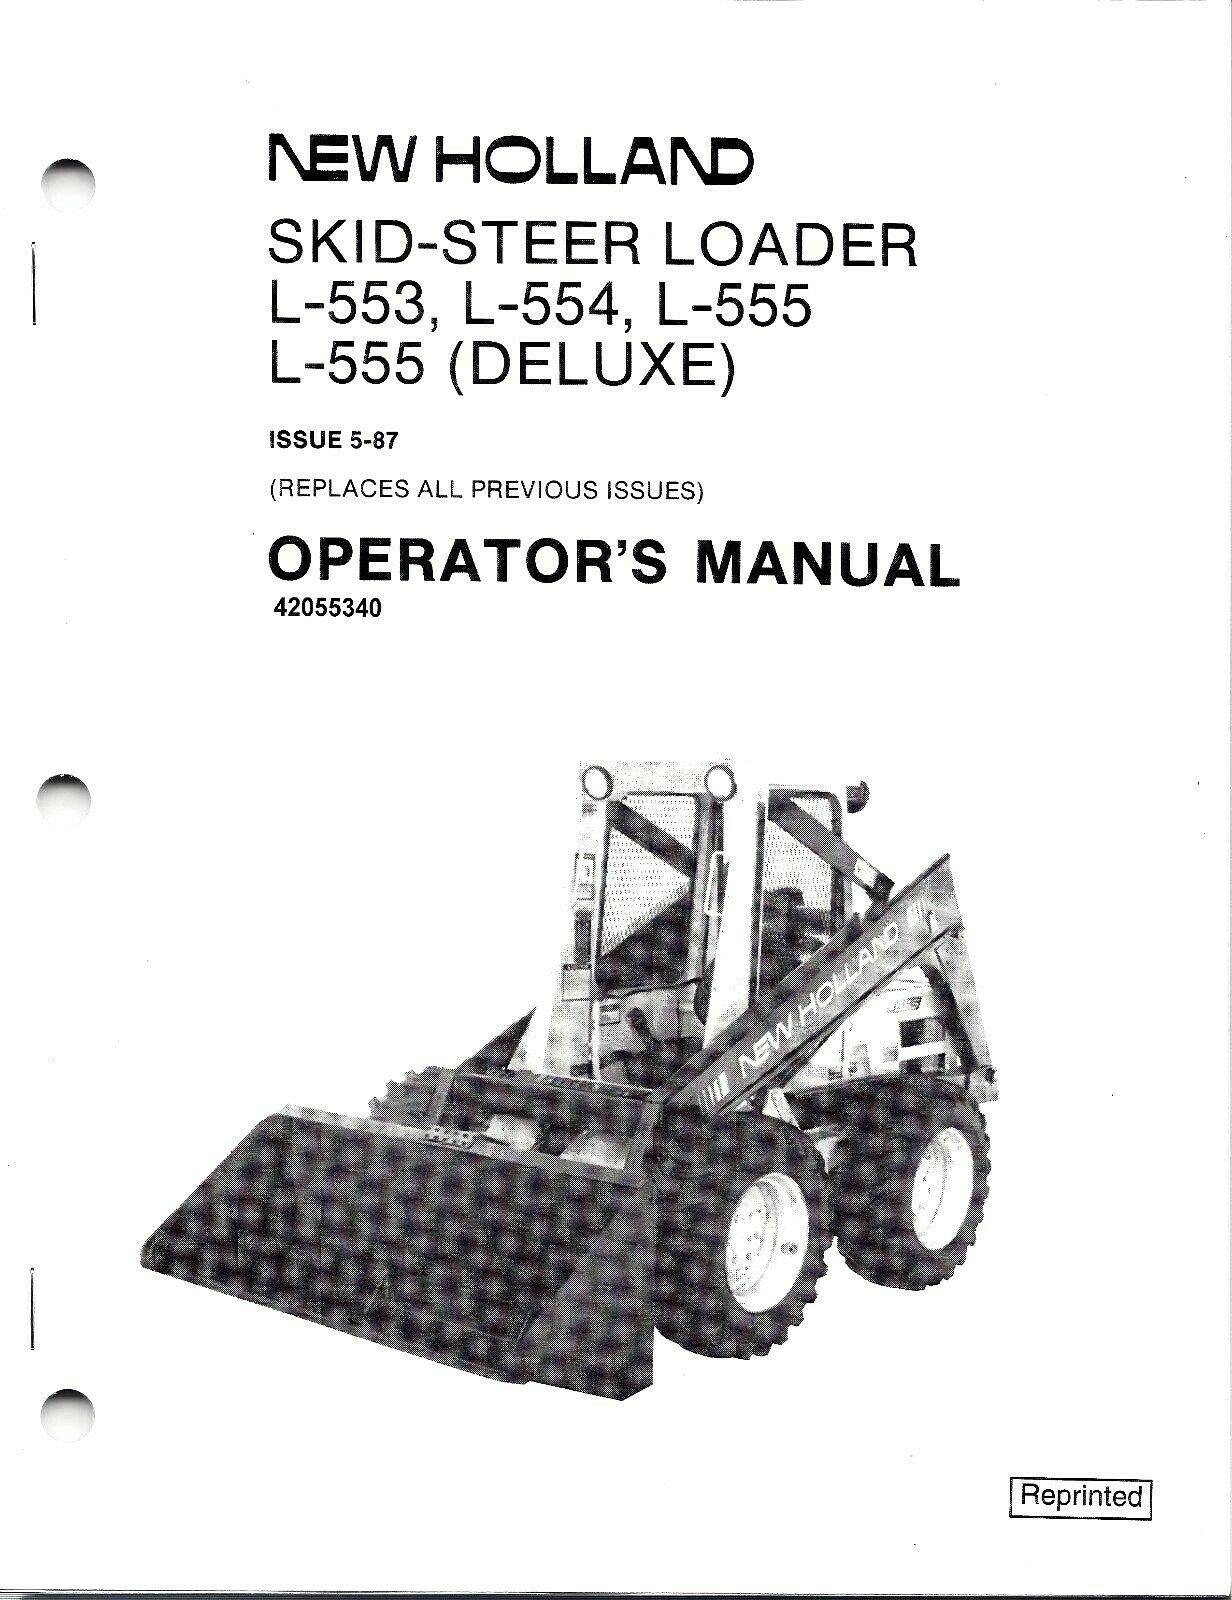 New Holland L553 L554 L555 Skid Loader Operator's Manual 42055340 1 of  1Only 2 available ...